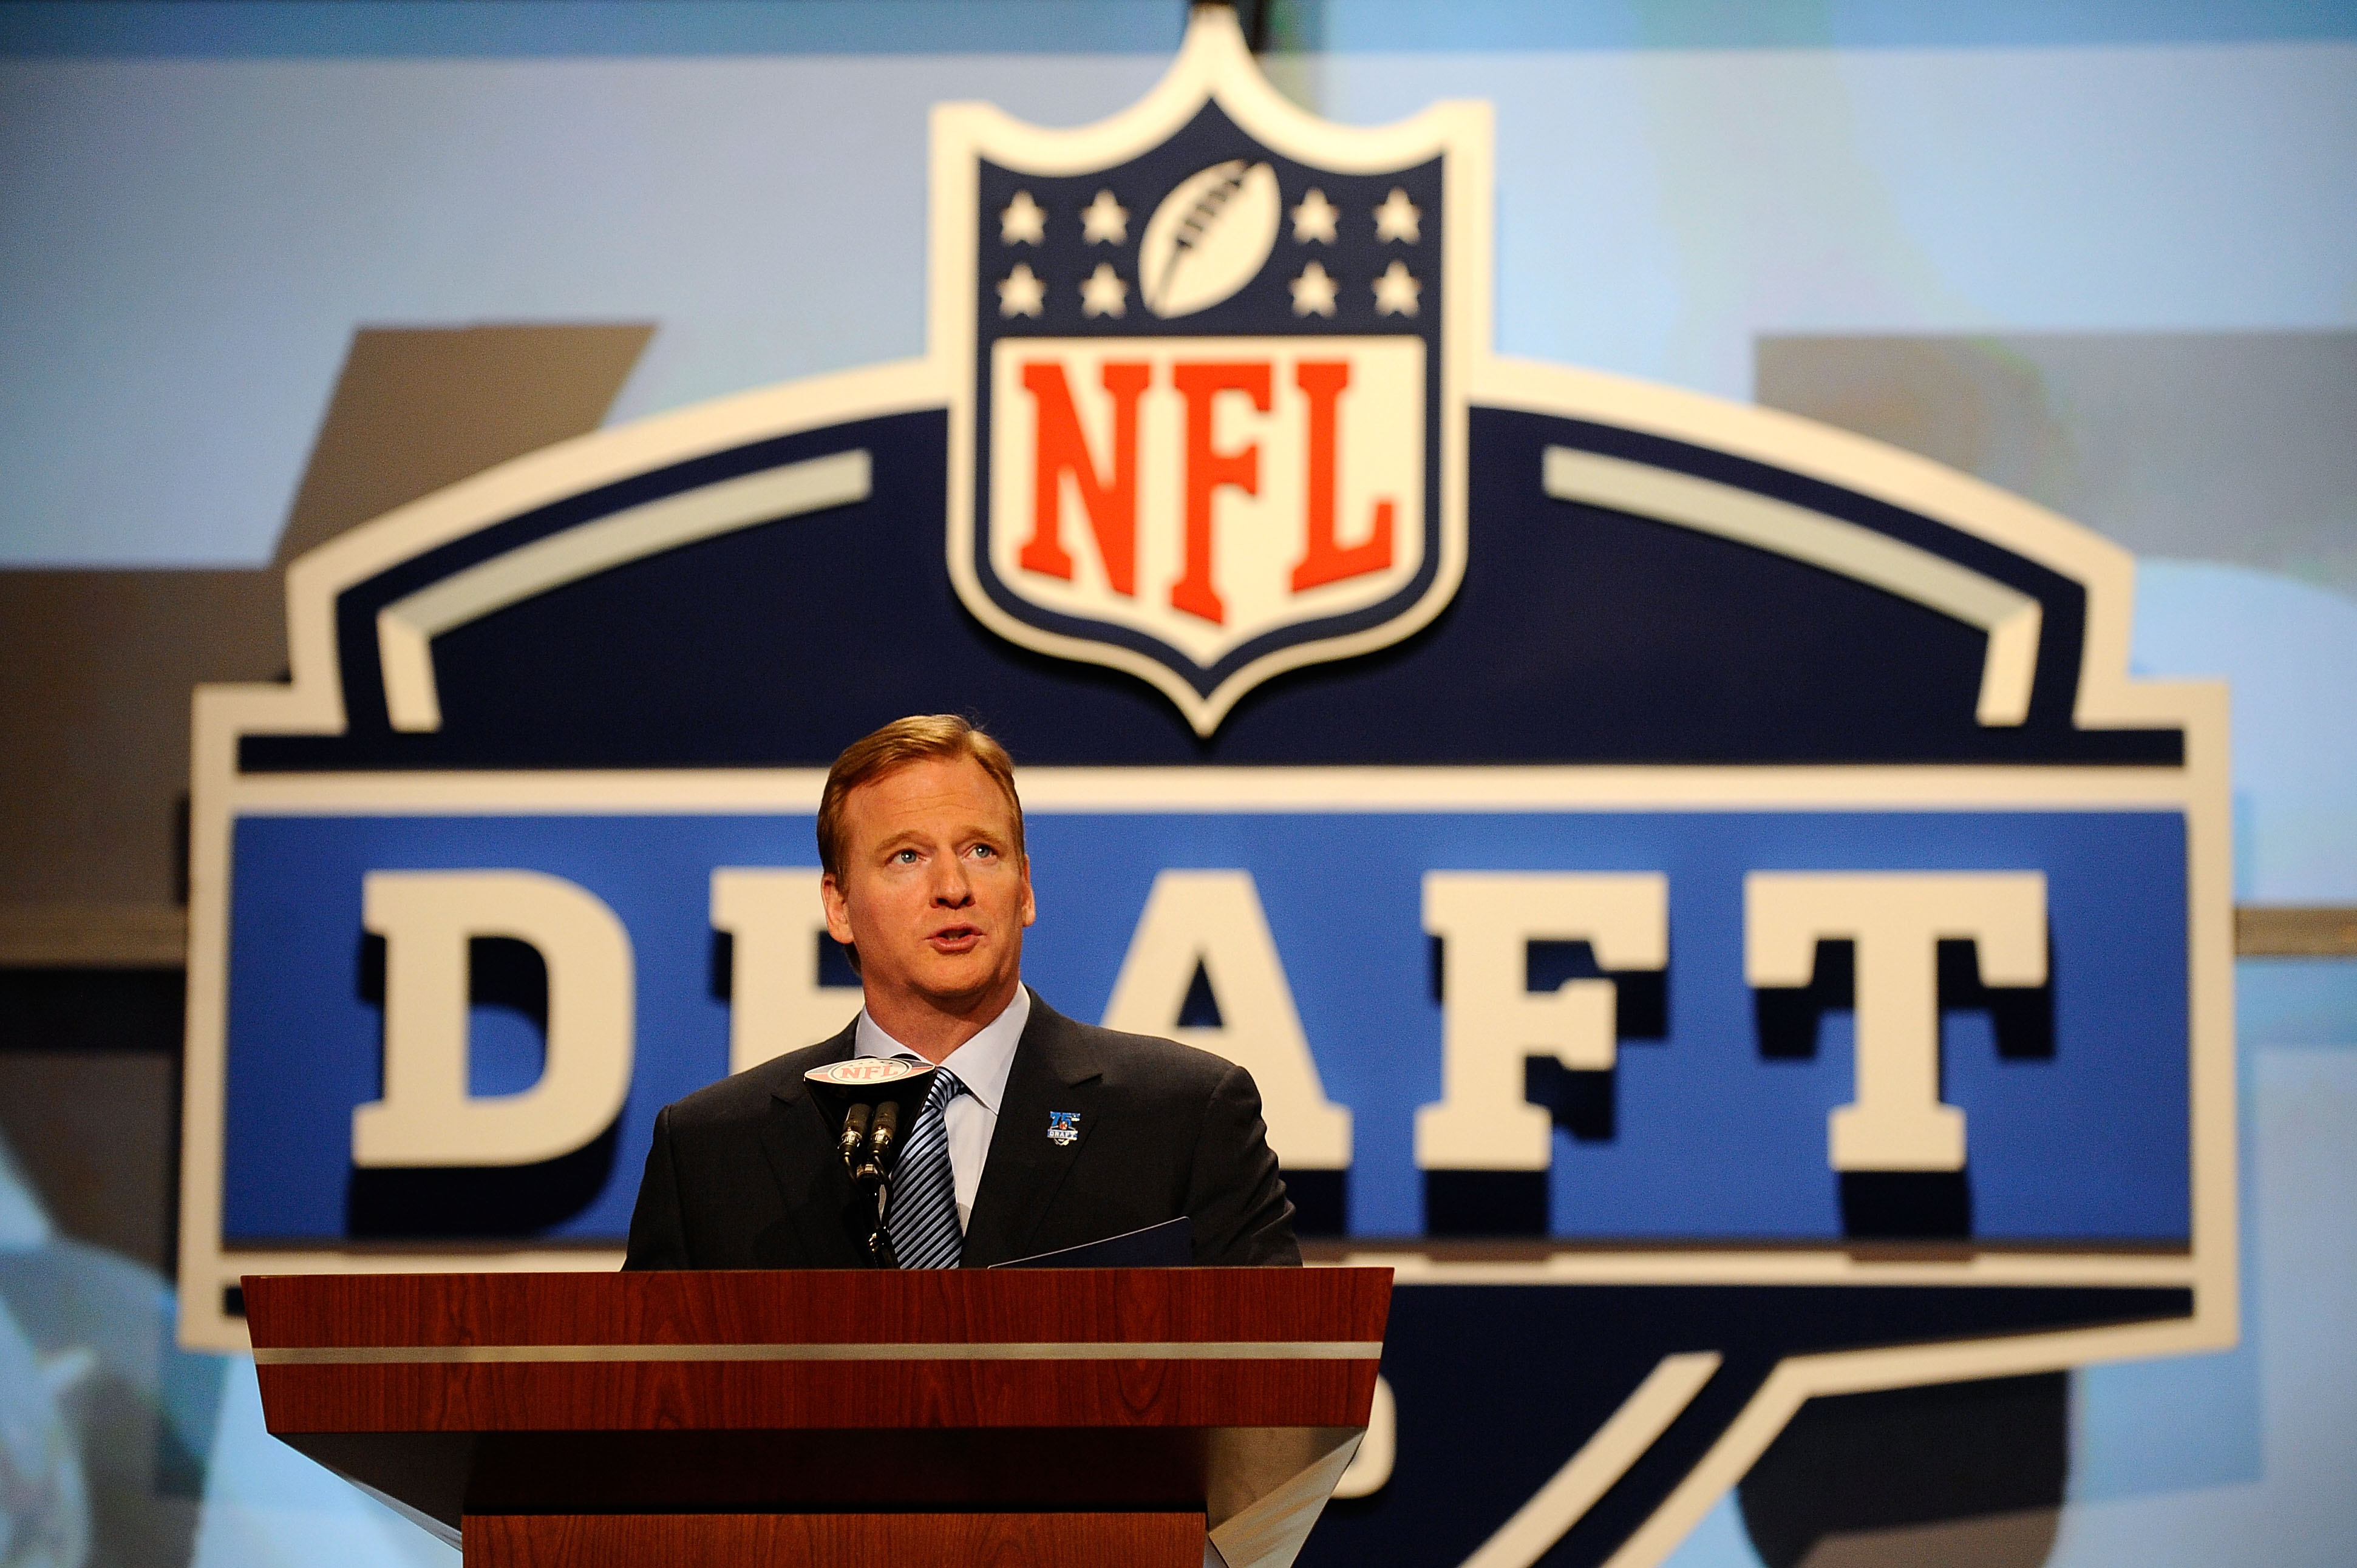 NEW YORK - APRIL 22:  NFL Commissioner Roger Goodell speaks at the podium on stage during the first round of the 2010 NFL Draft at Radio City Music Hall on April 22, 2010 in New York City.  (Photo by Jeff Zelevansky/Getty Images)